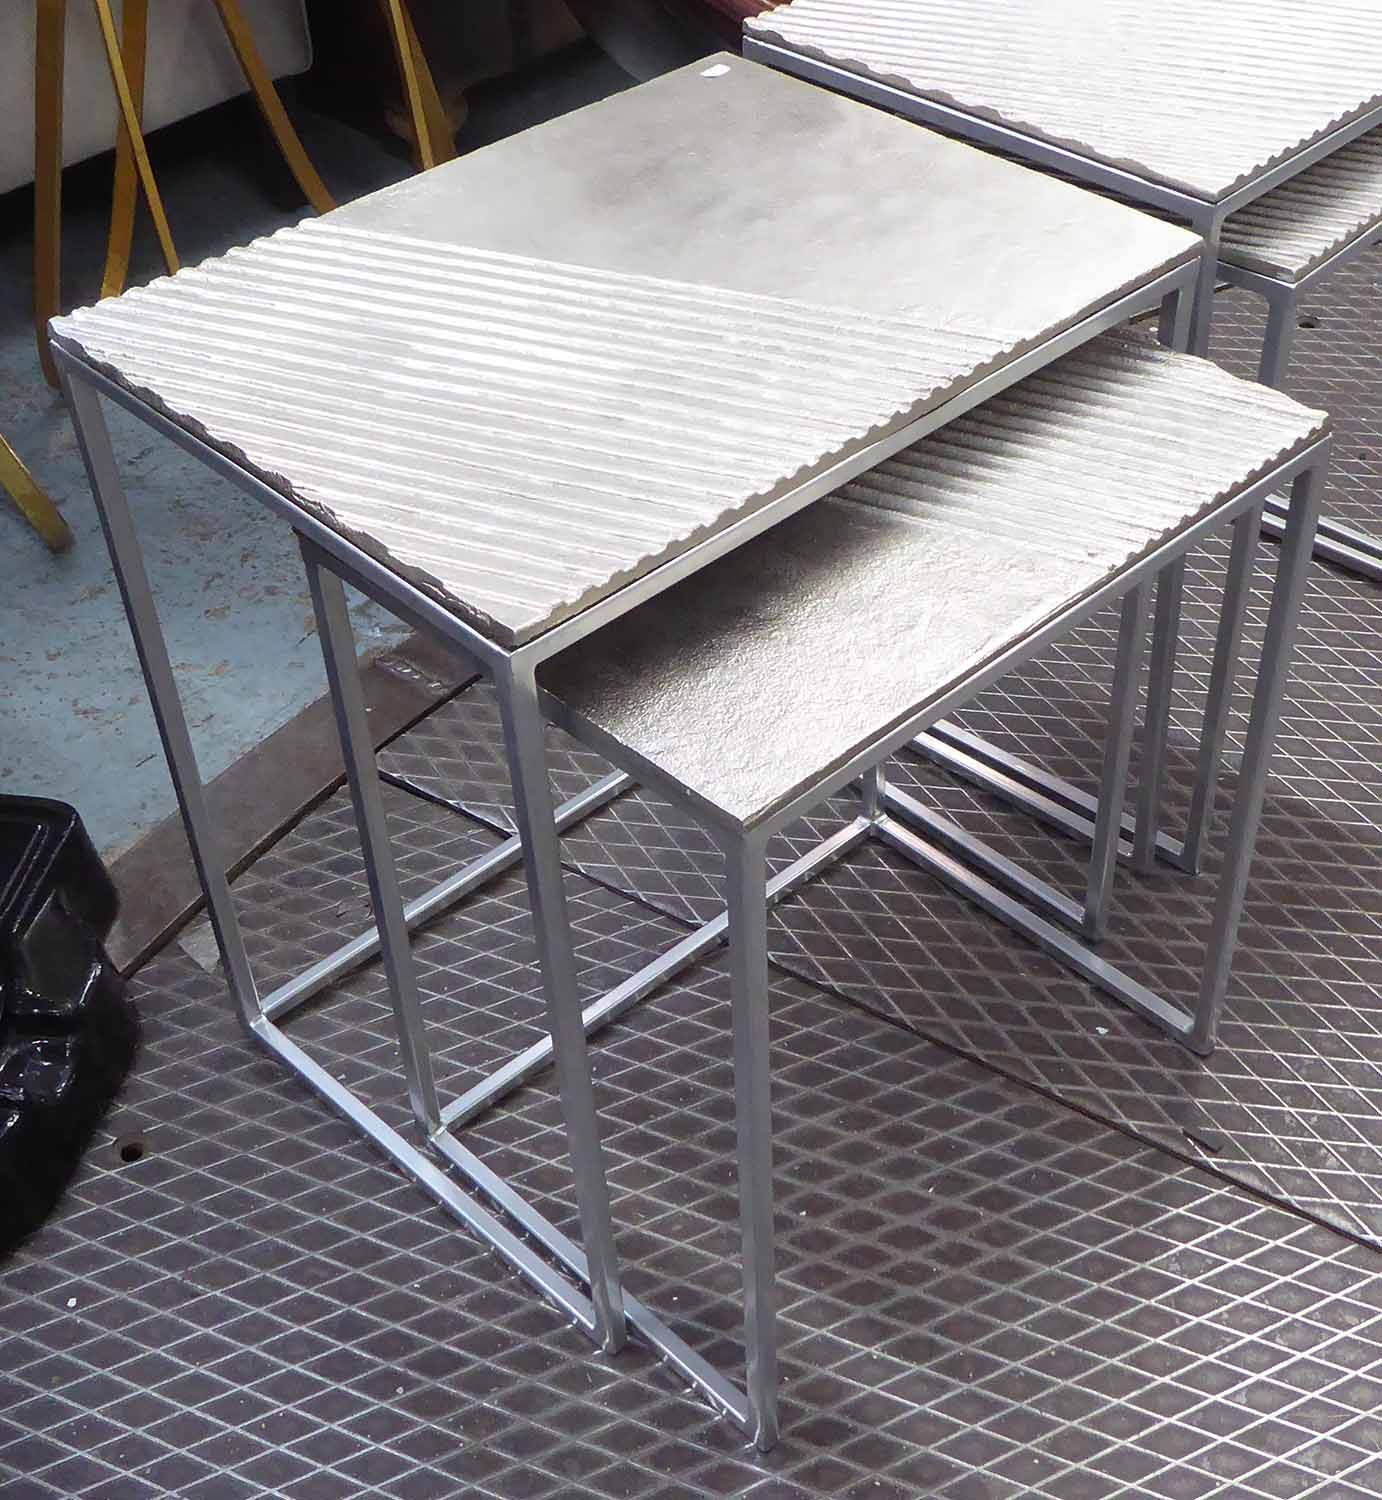 Lot 16 - NEST OF TWO TABLES, in silver painted finish on metal supports, 46cm x 36cm x 53cm H.